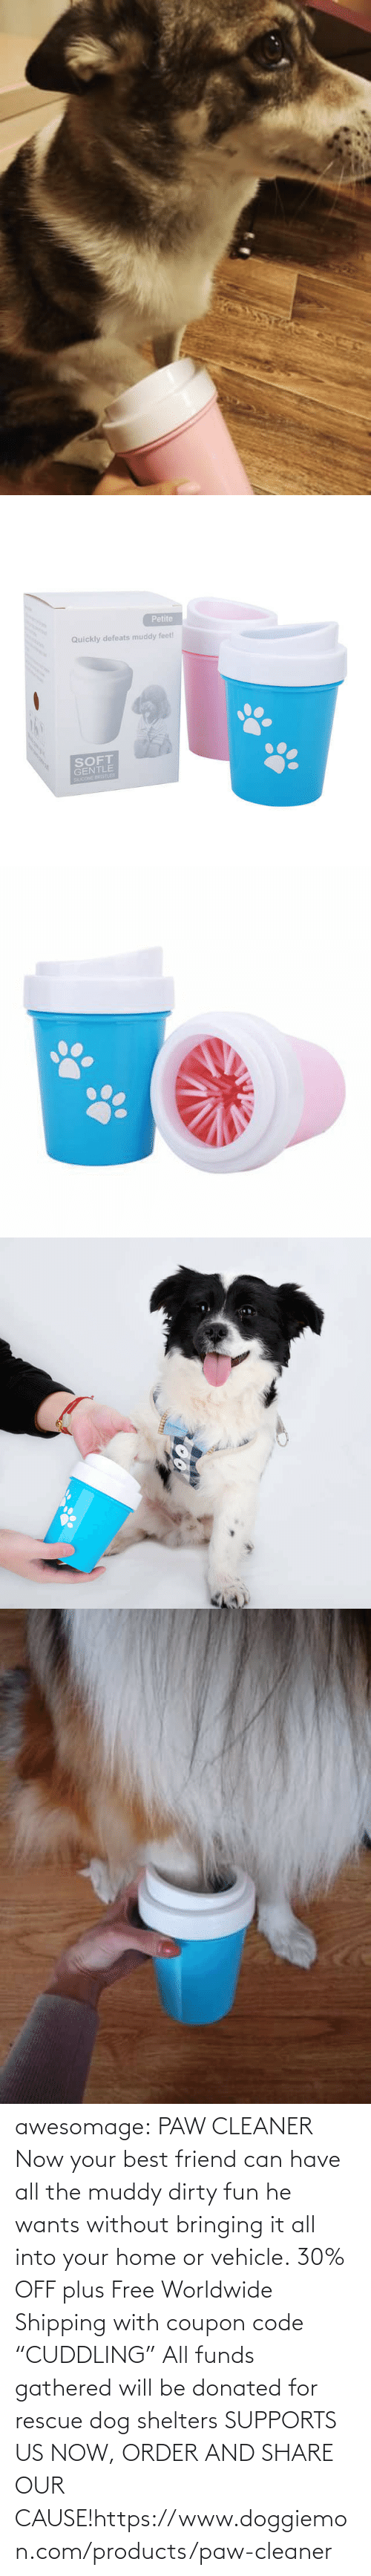 "www: awesomage:   PAW CLEANER     Now your best friend can have all the muddy dirty fun he wants without bringing it all into your home or vehicle.    30% OFF plus Free Worldwide Shipping with coupon code ""CUDDLING""    All funds gathered will be donated for rescue dog shelters    SUPPORTS US NOW, ORDER AND SHARE OUR CAUSE!https://www.doggiemon.com/products/paw-cleaner"